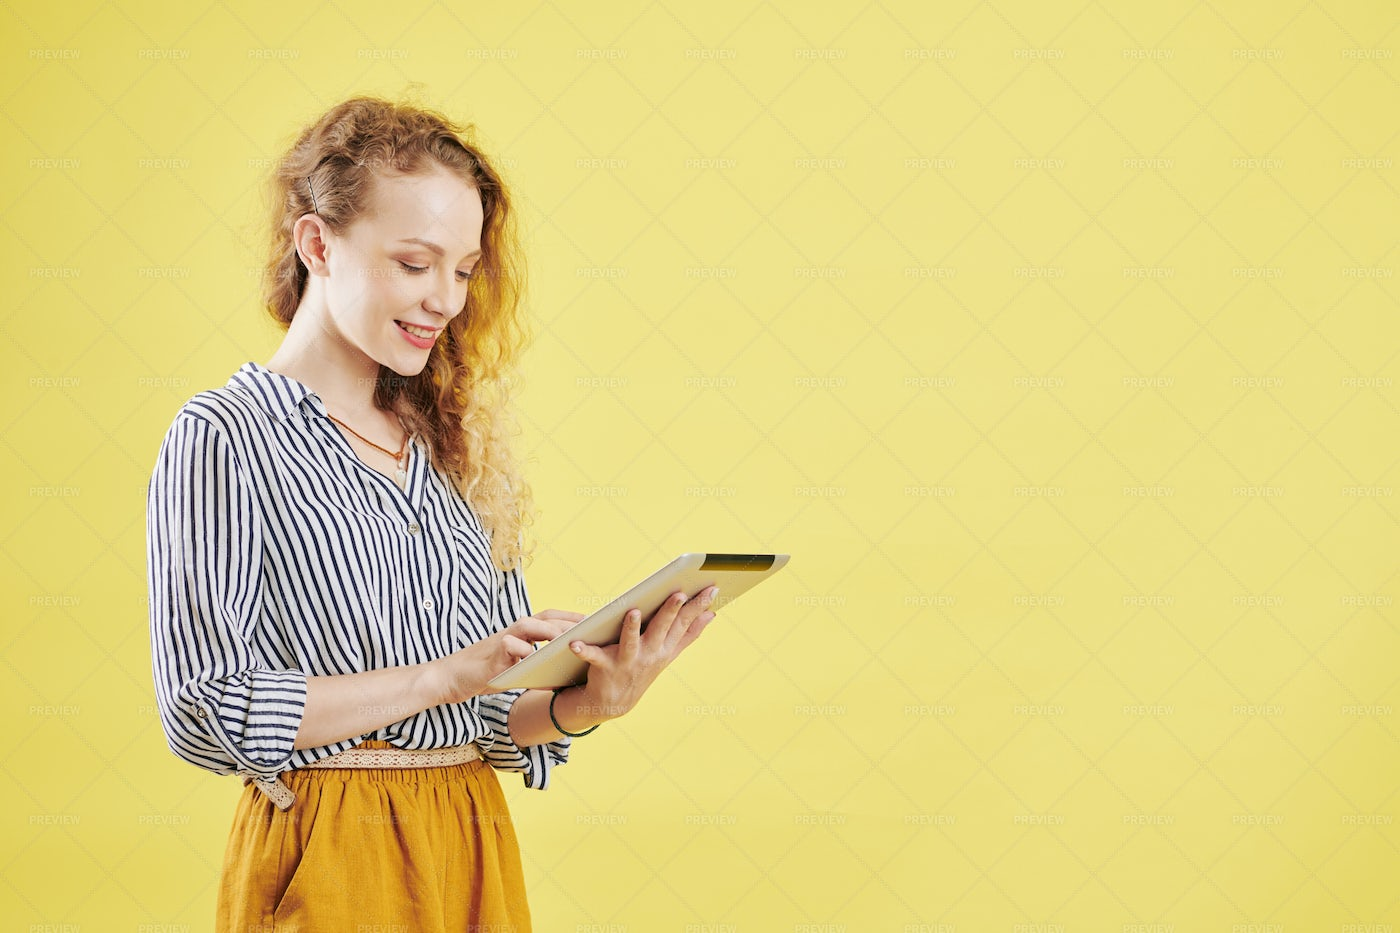 Woman Using Application On Tablet: Stock Photos